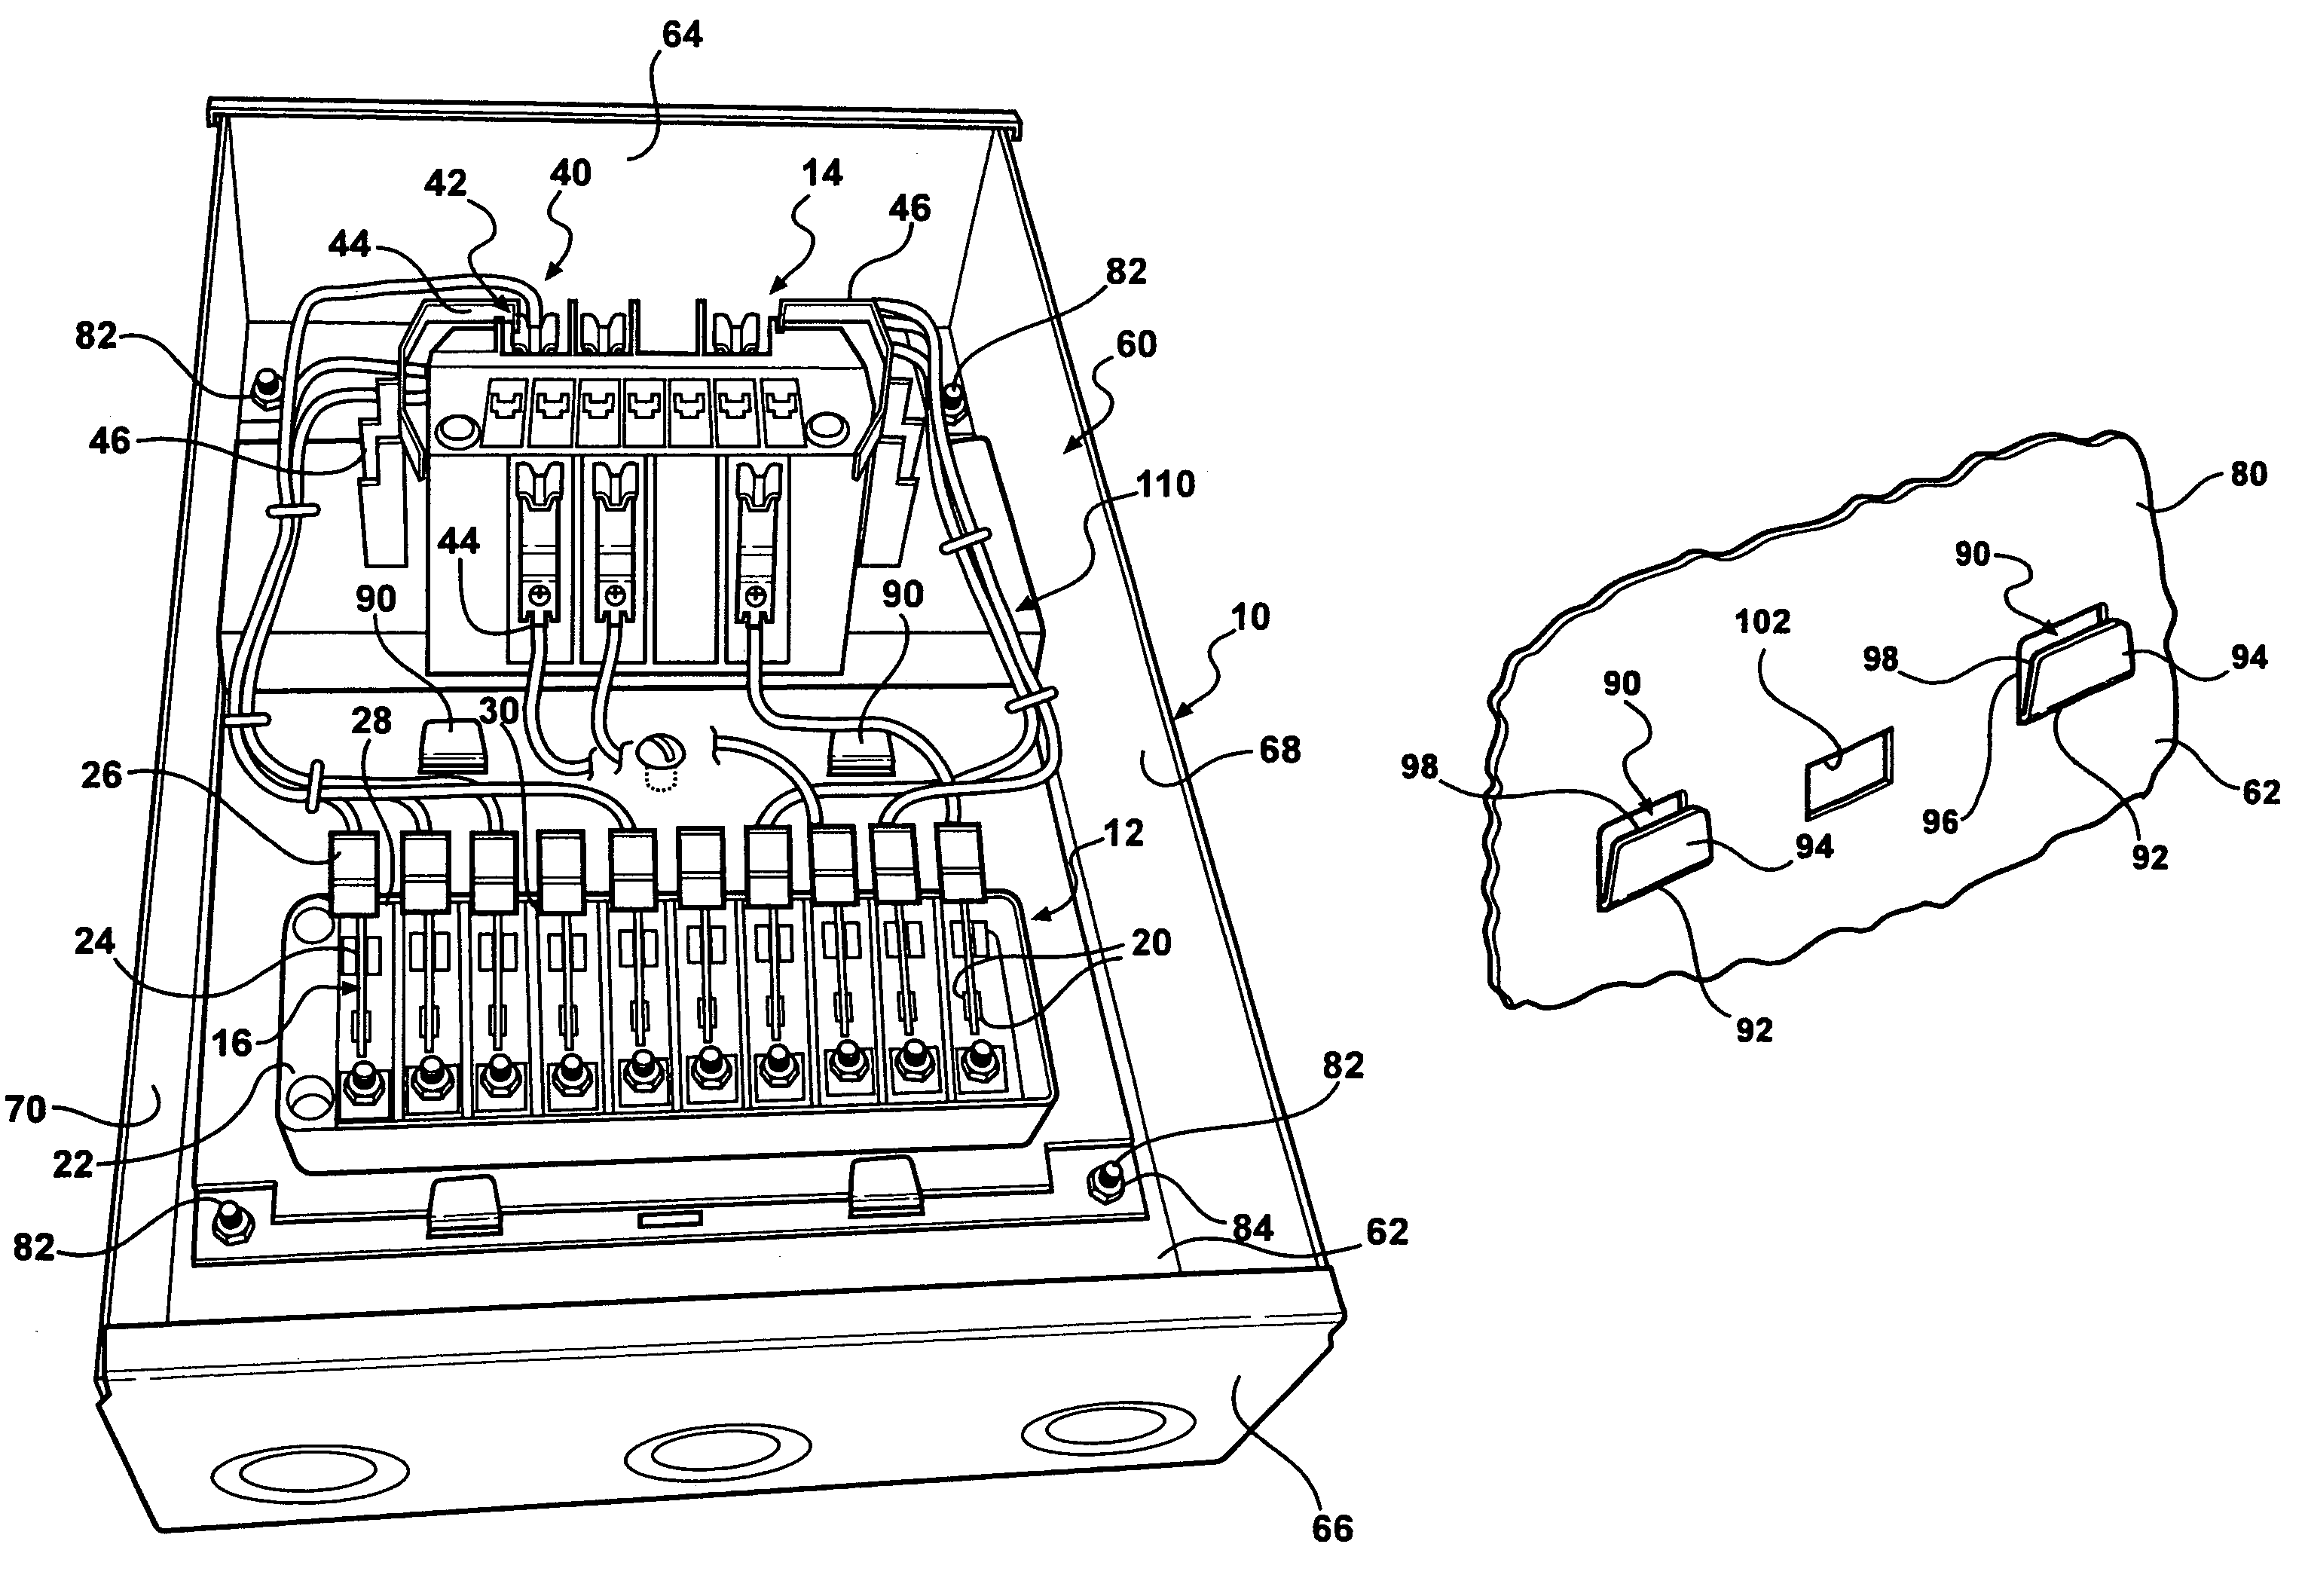 patent us7479029 - modular watthour meter socket and test switch